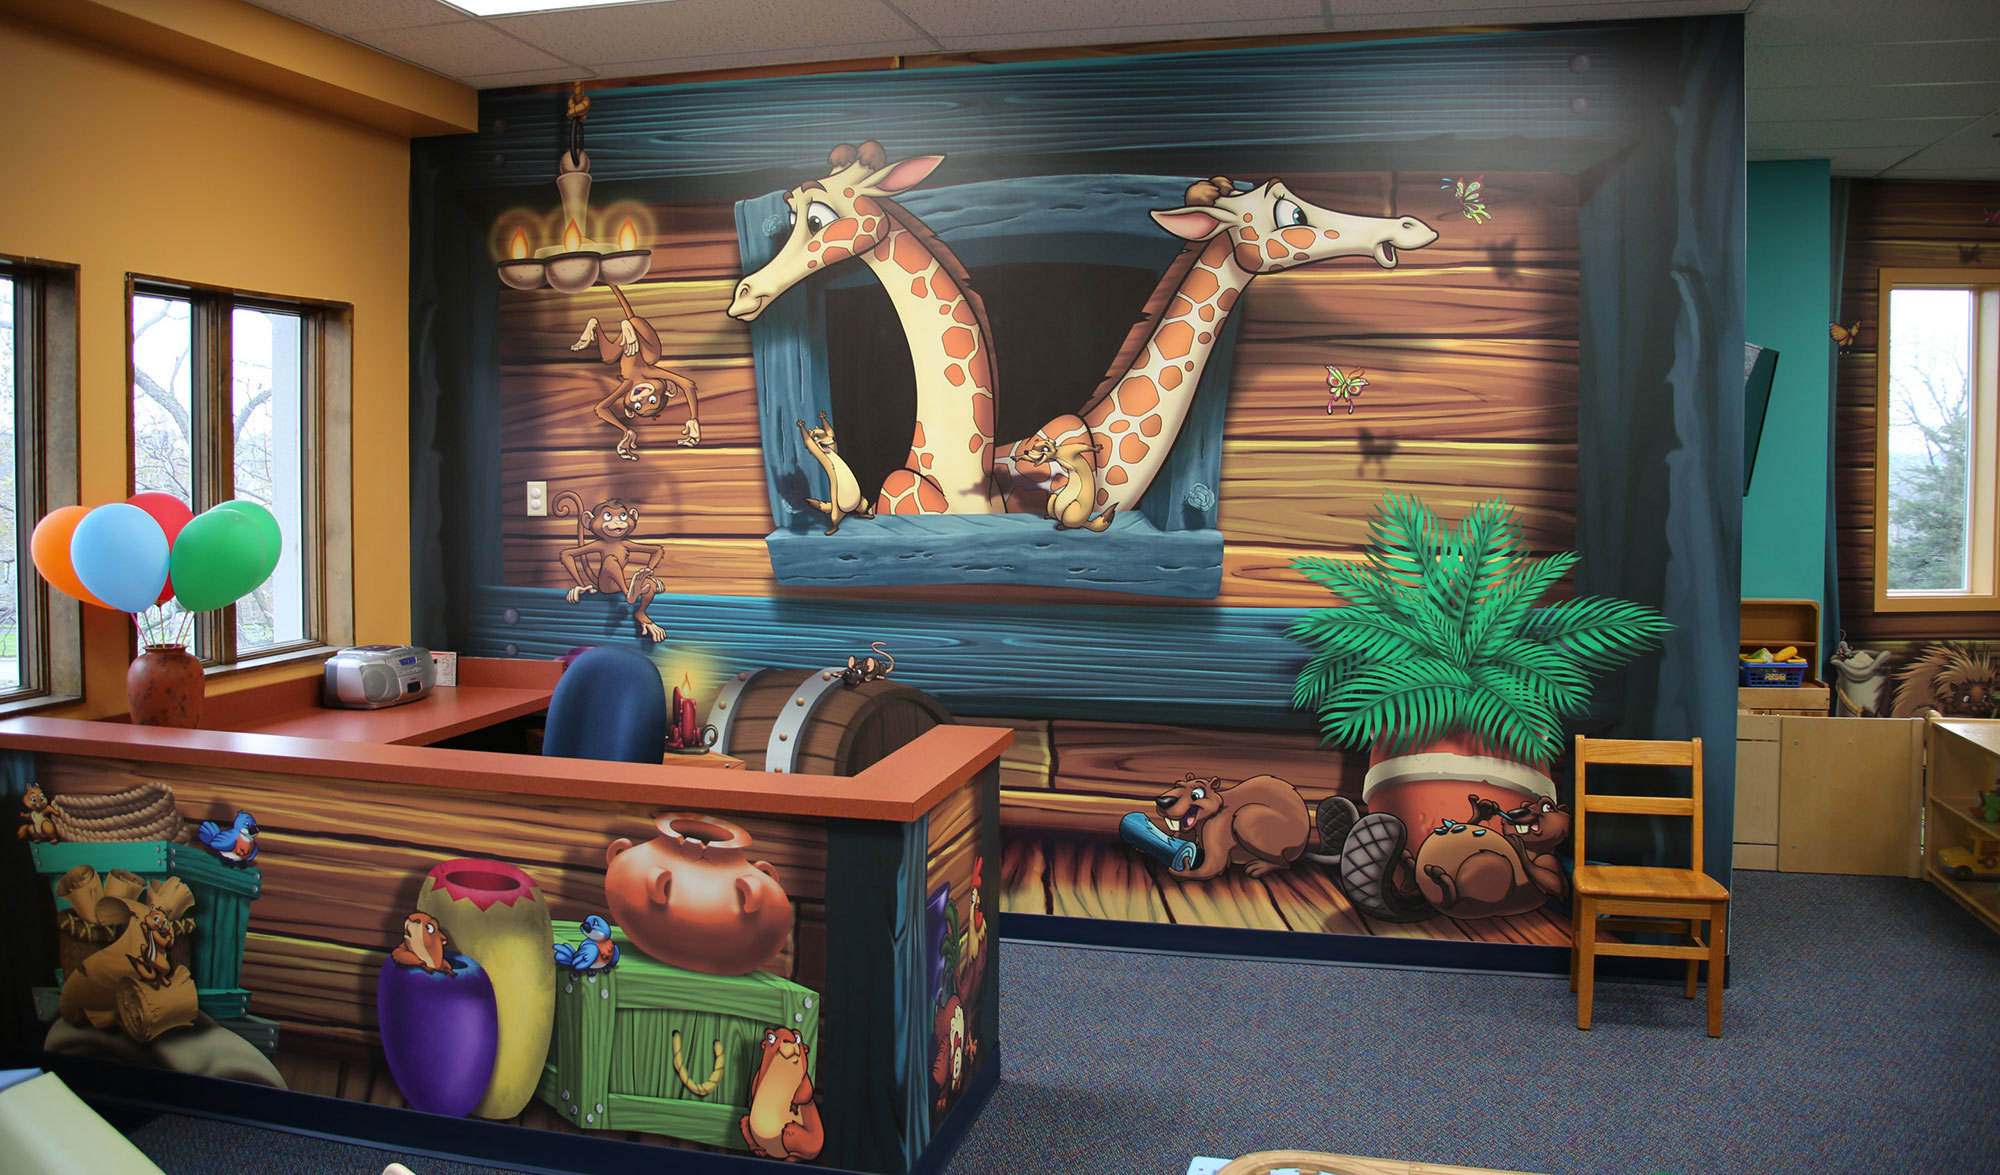 Noah's Ark Themed Wall Covering in Nursery at Presbyterian Church of Stanley